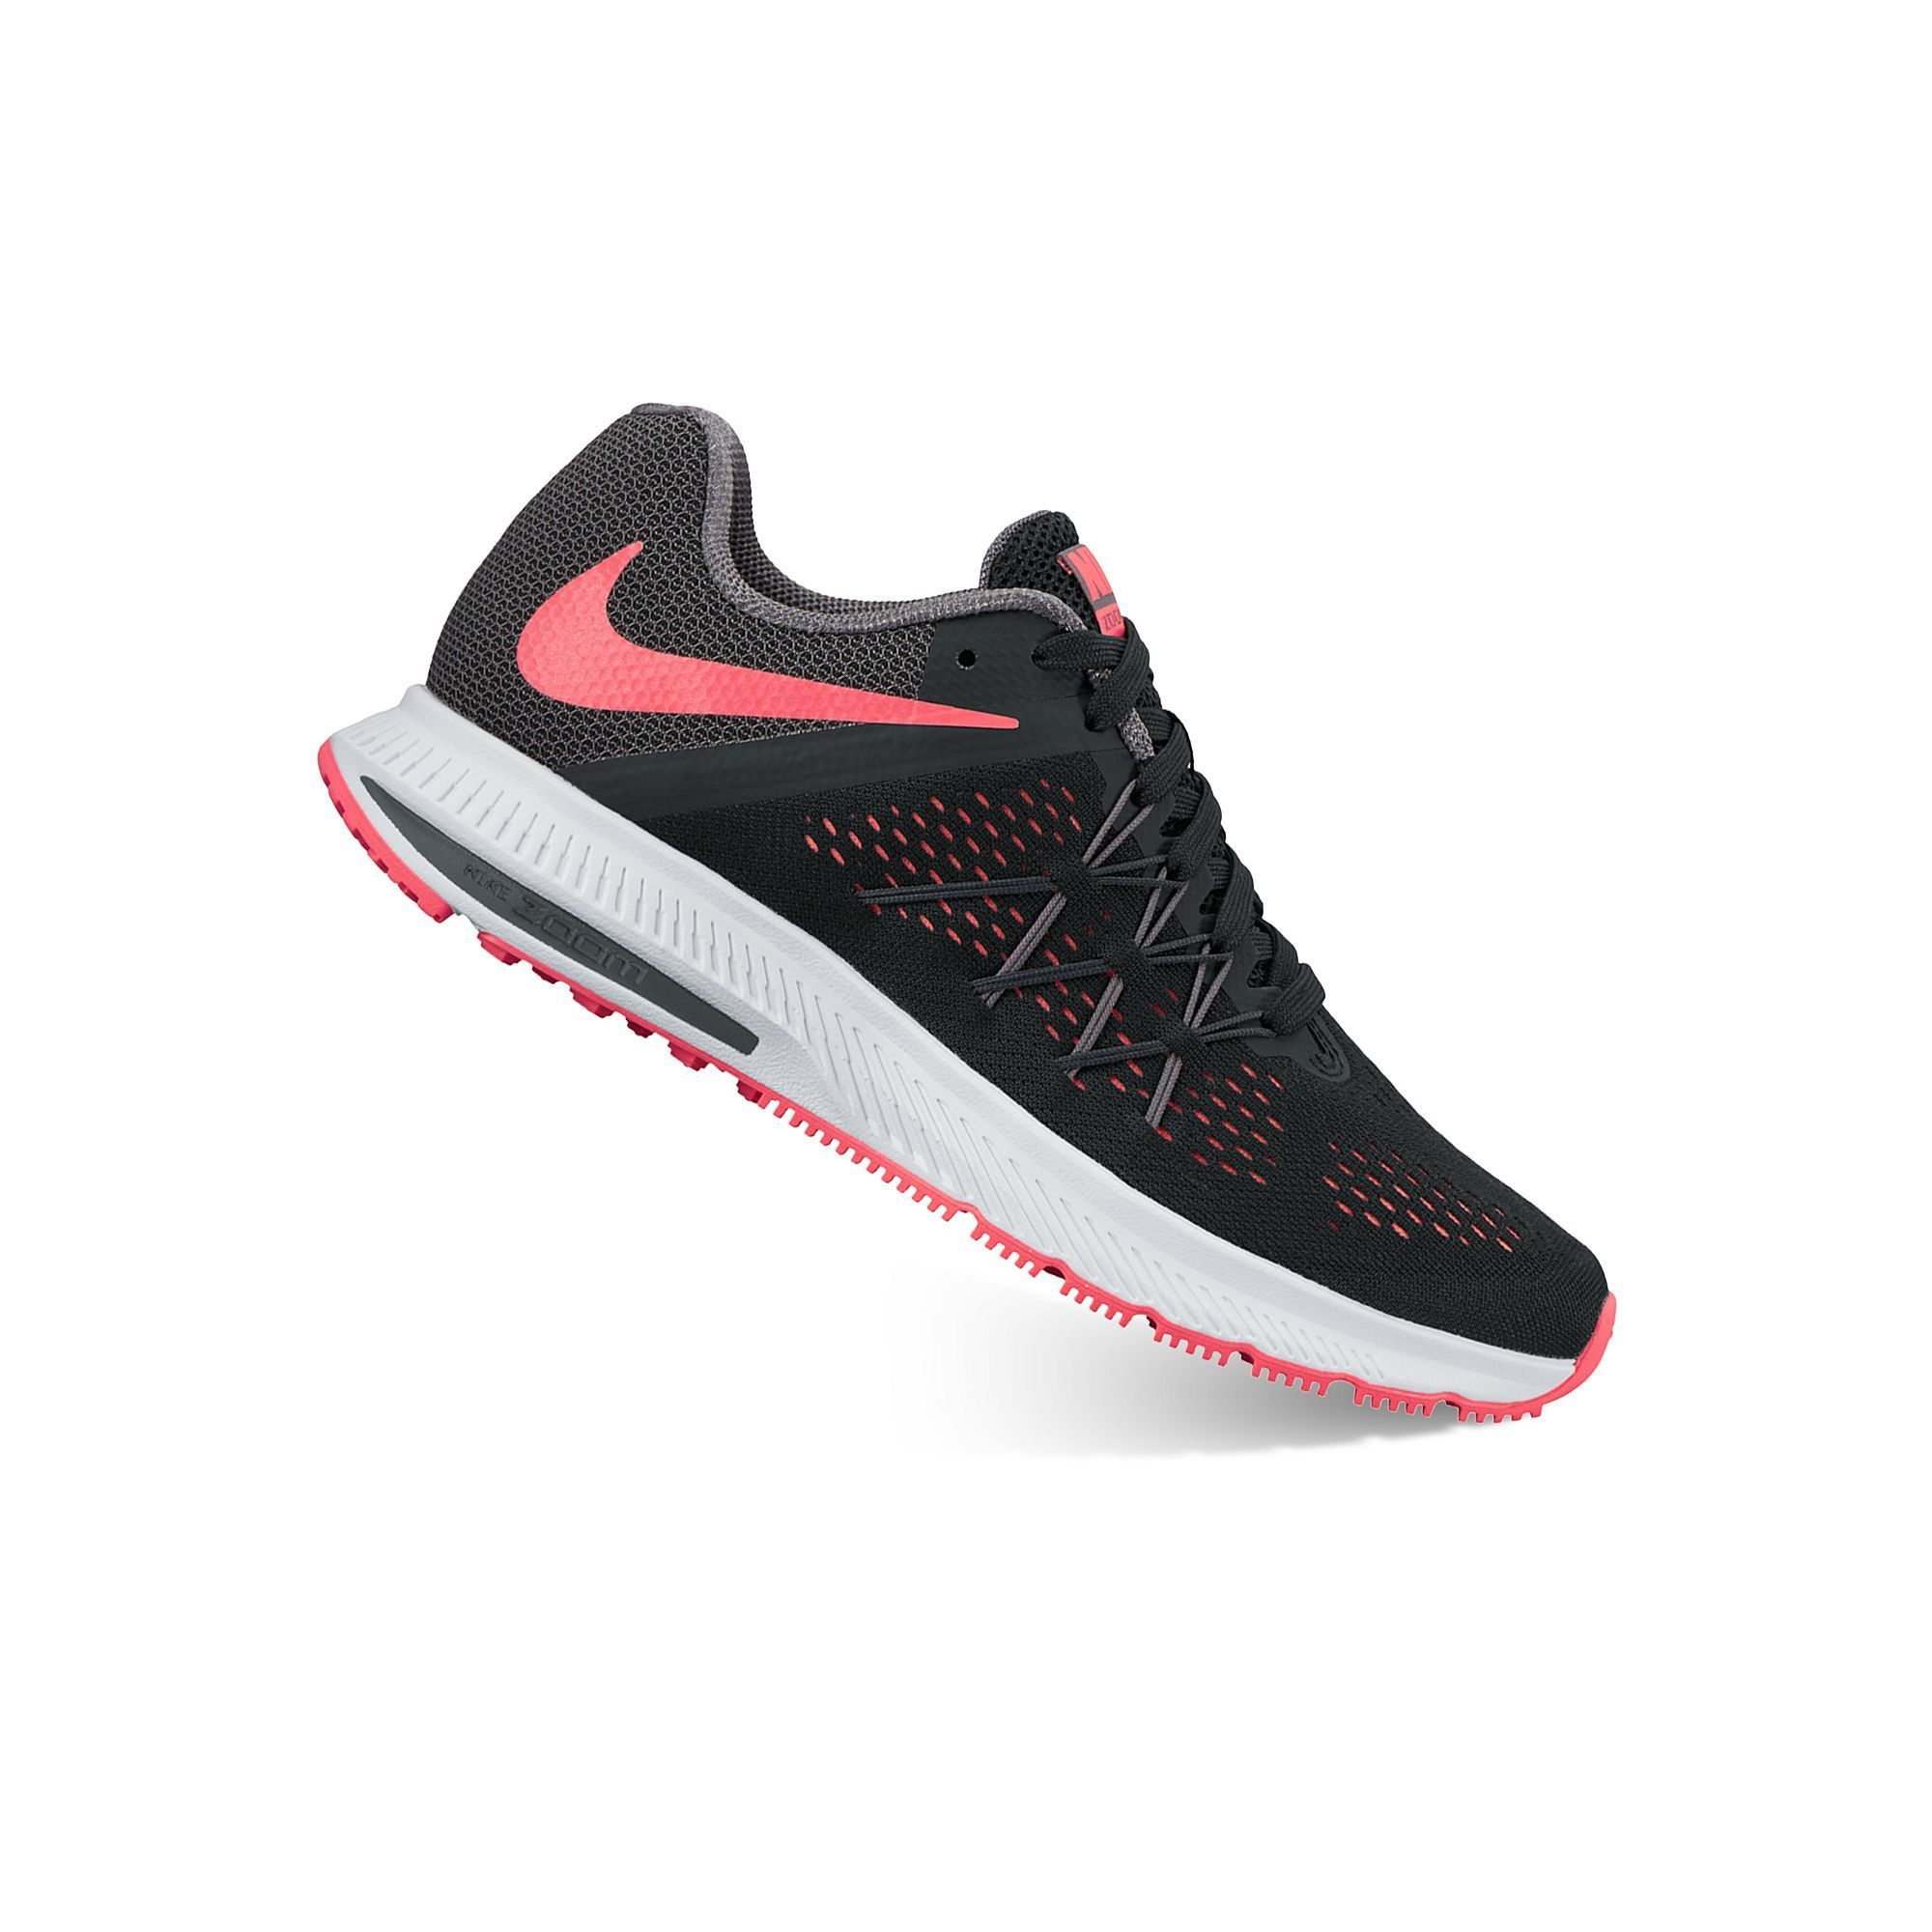 Nike Zoom Winflo 3 Women's Running Shoes | Running women